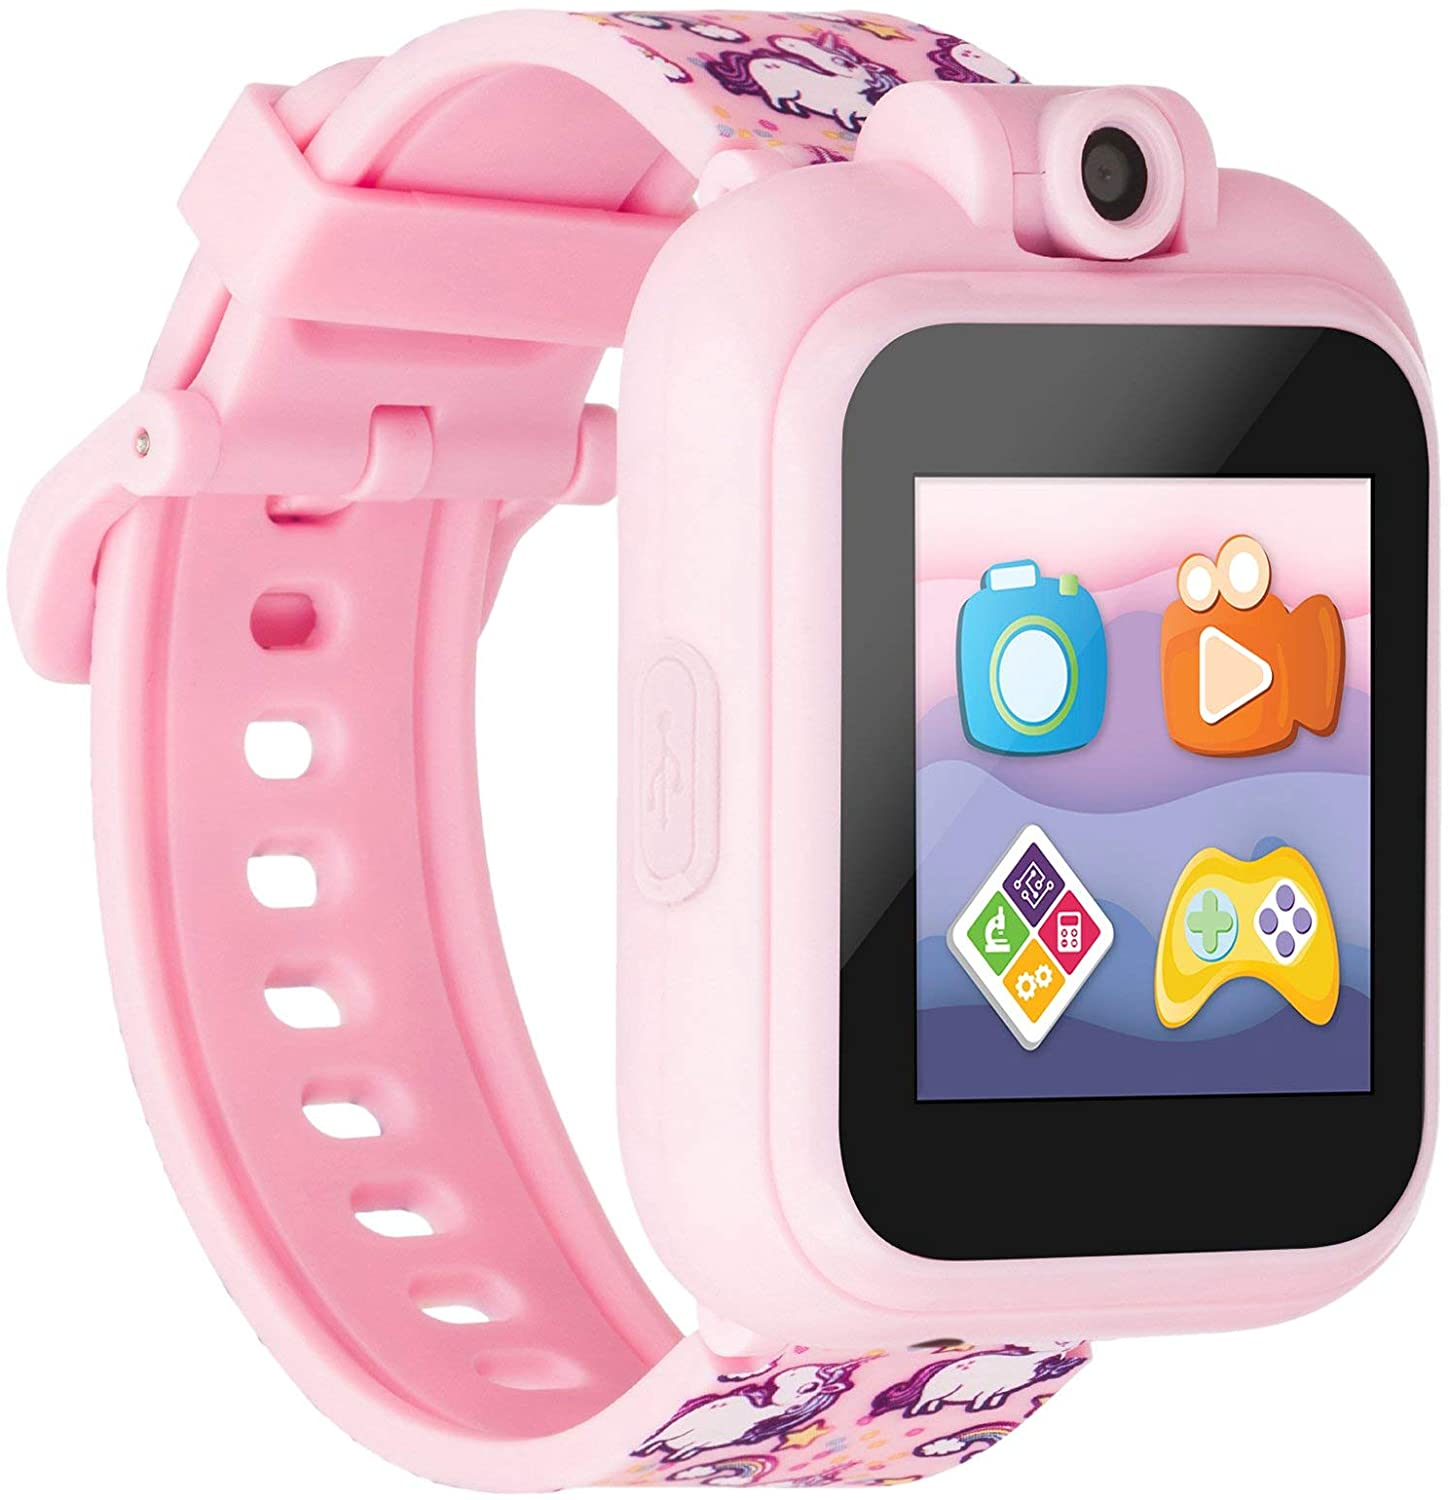 playzoom 2 kids smartwatch pink color